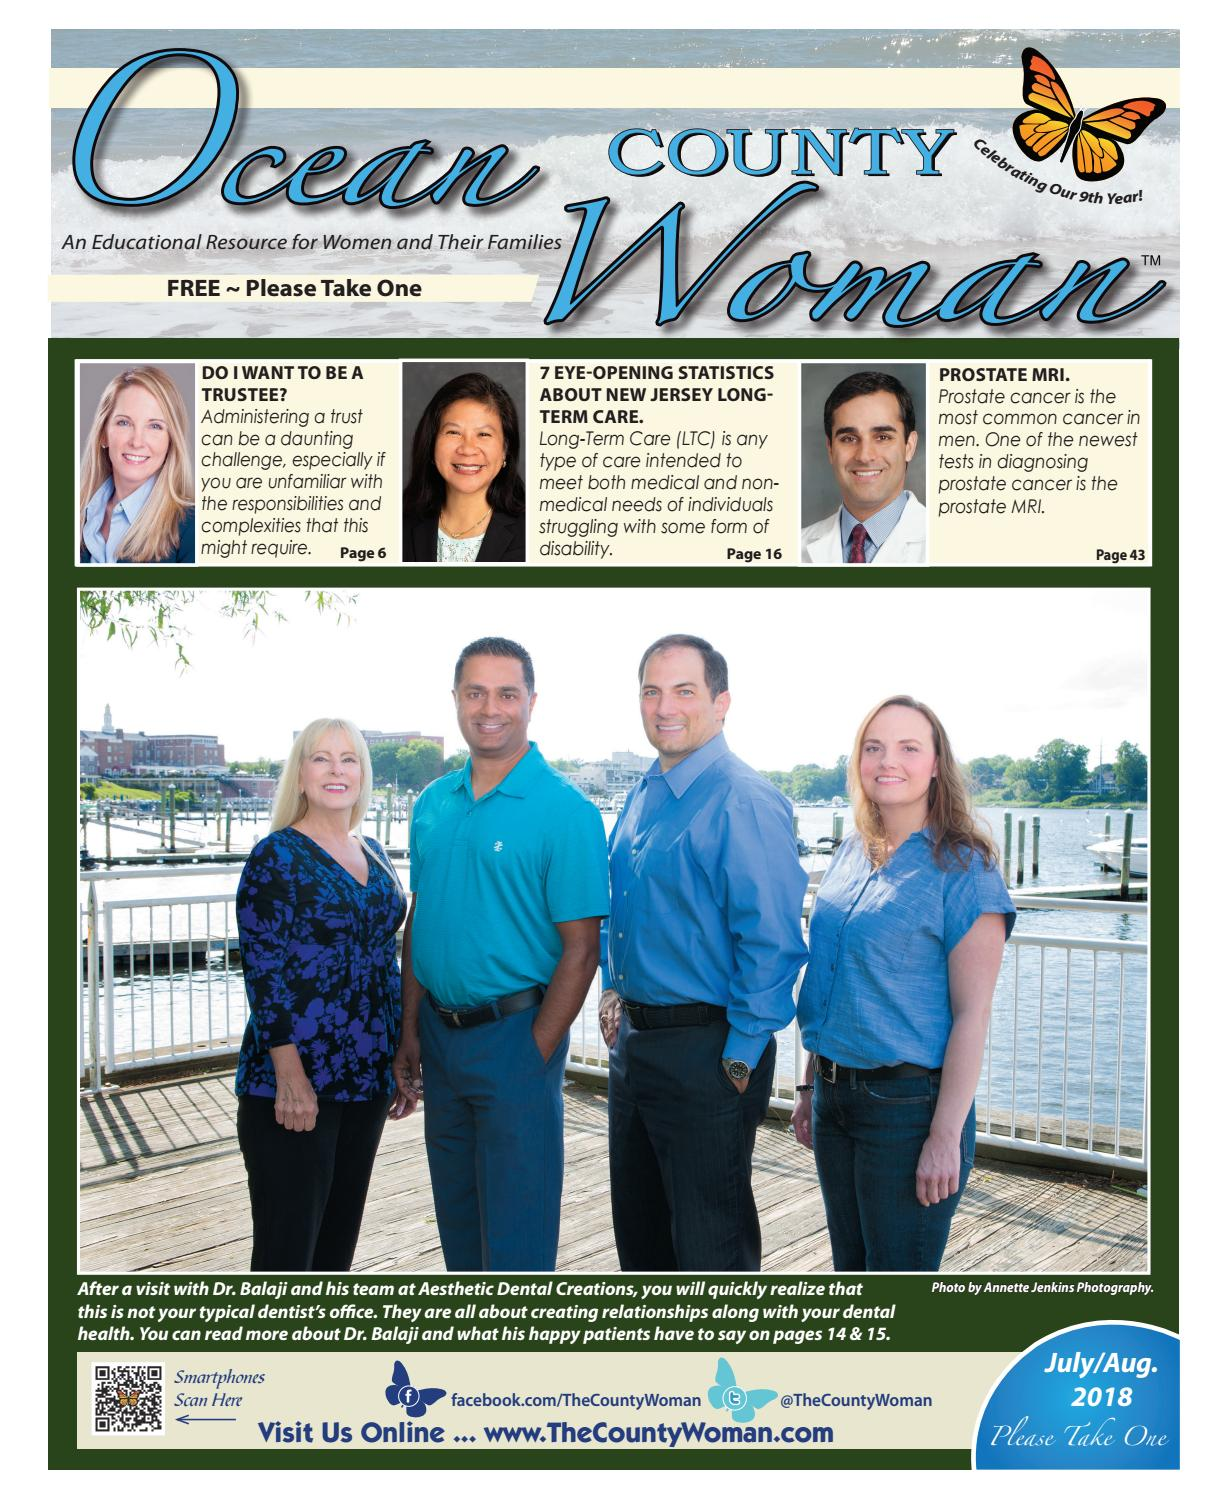 Ocean County Woman - July/August 2018 by The County Woman - issuu